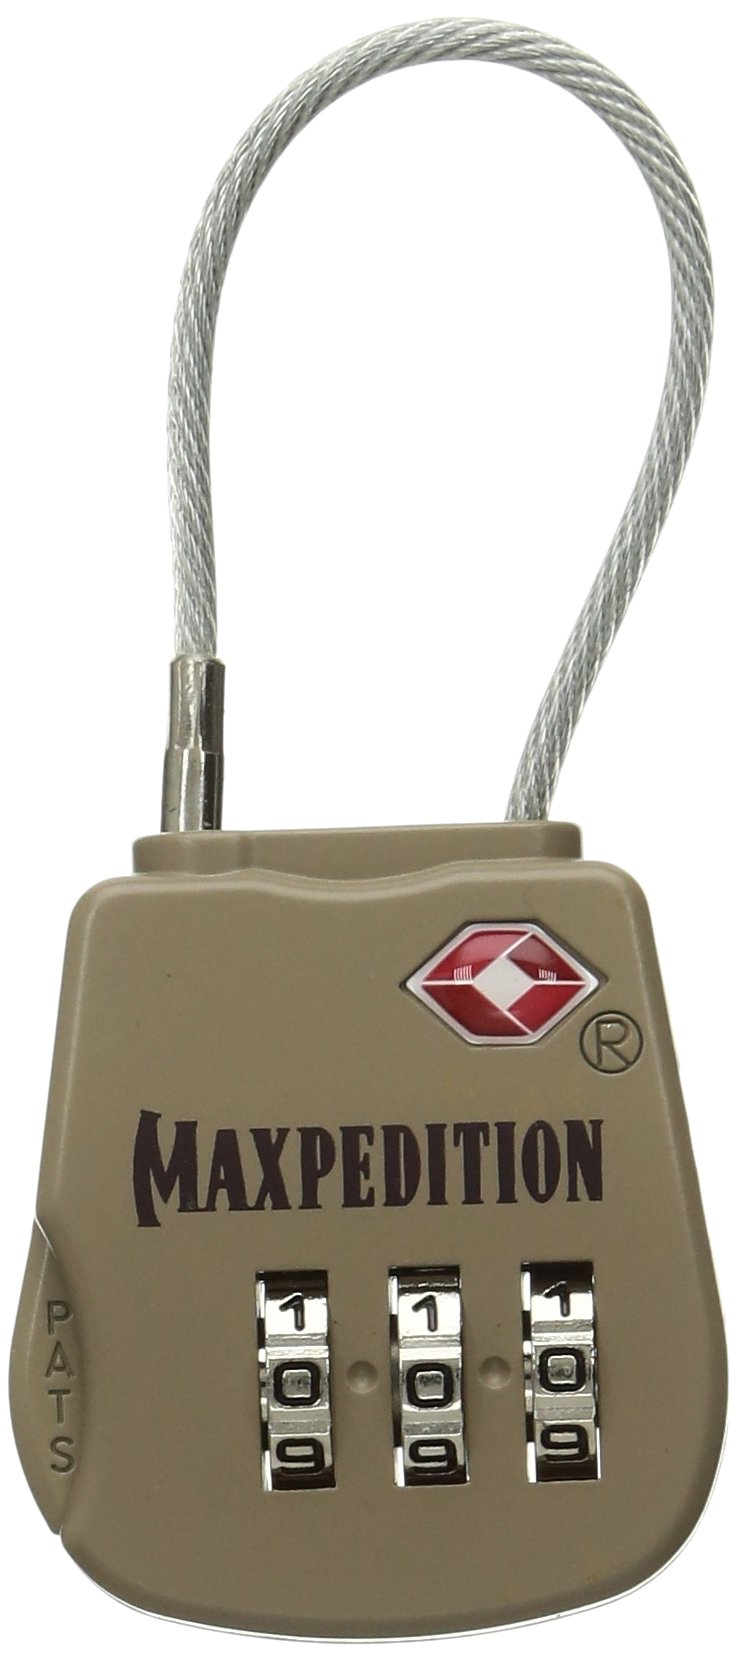 Maxpedition MXTSALOCK-BRK Tactical Luggage Lock by Maxpedition (Image #1)